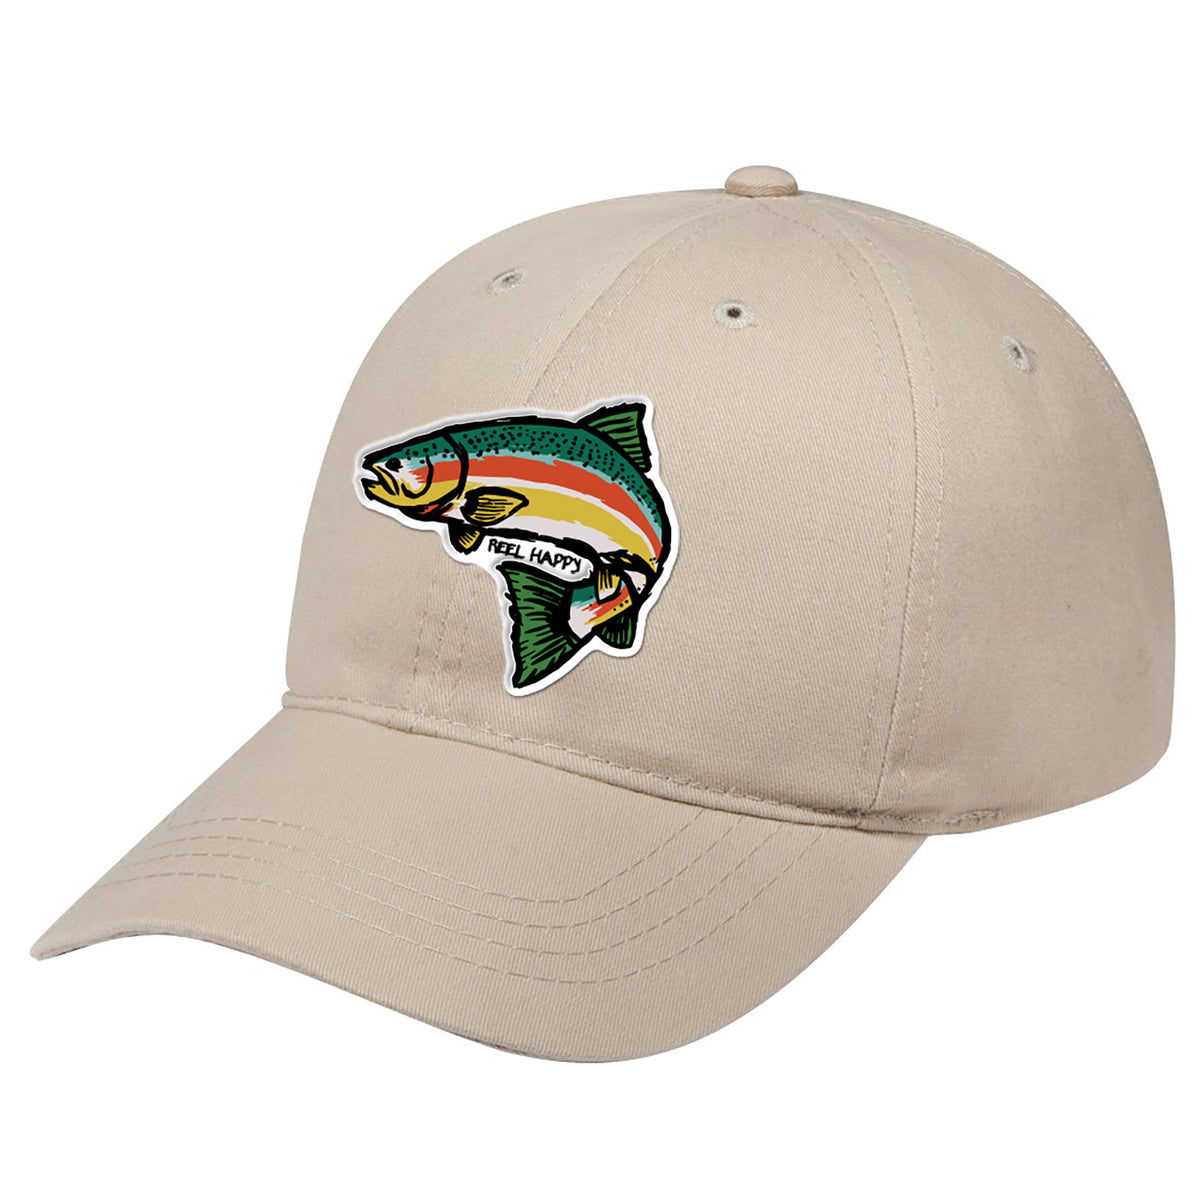 Trout Blender Dad Hat - Khaki - Reel Happy Co